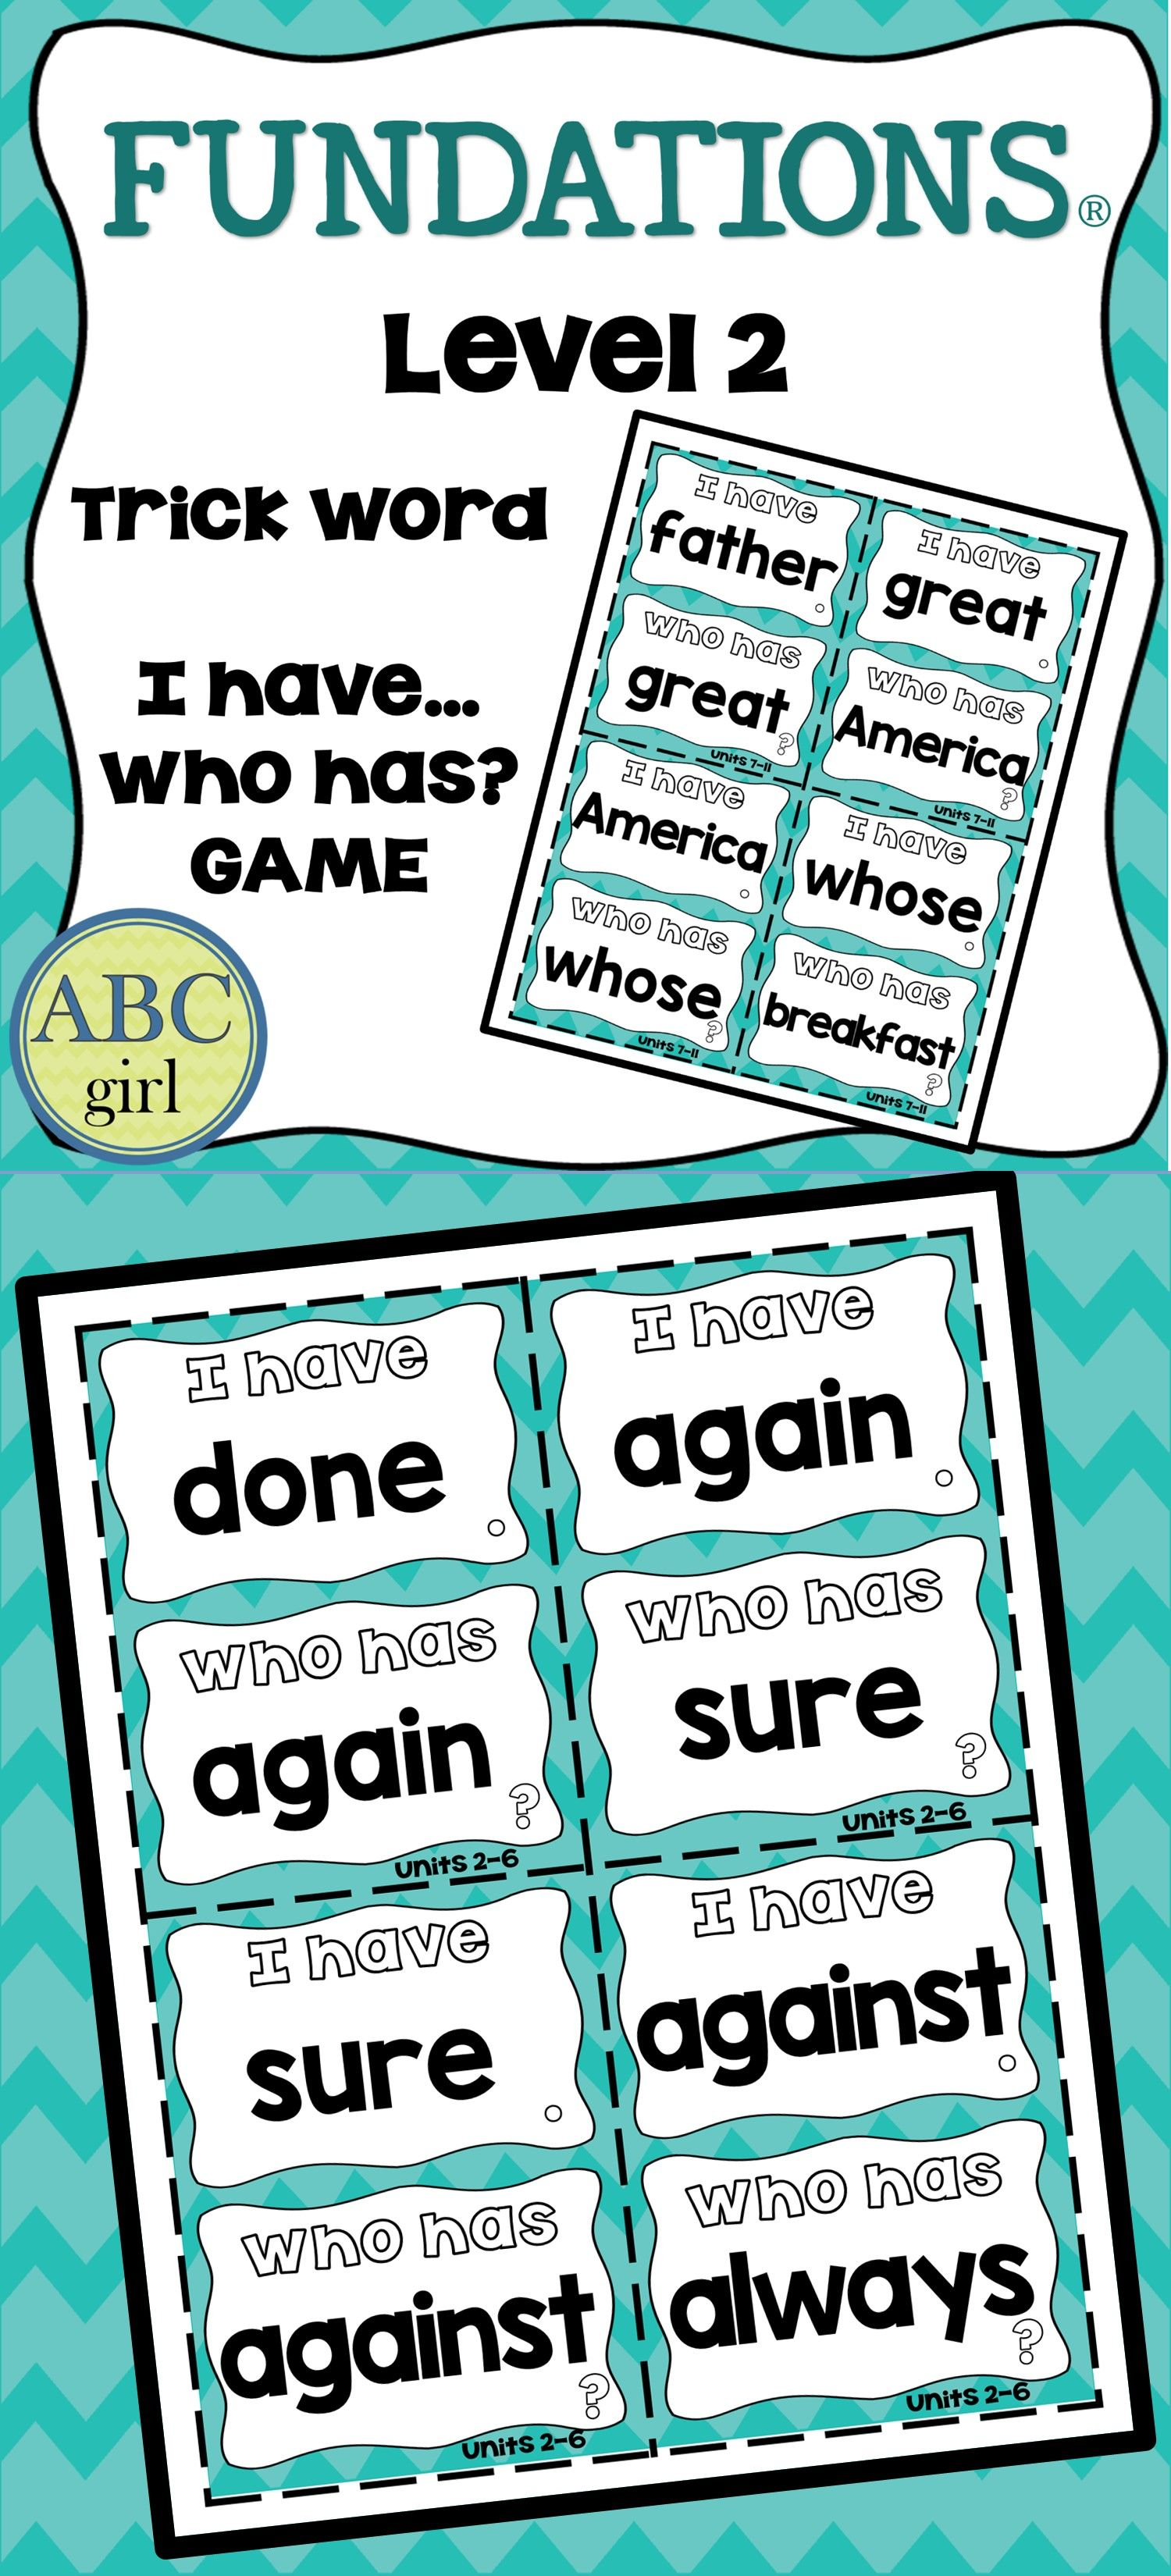 hight resolution of Fundations Level 2 Worksheets   Printable Worksheets and Activities for  Teachers